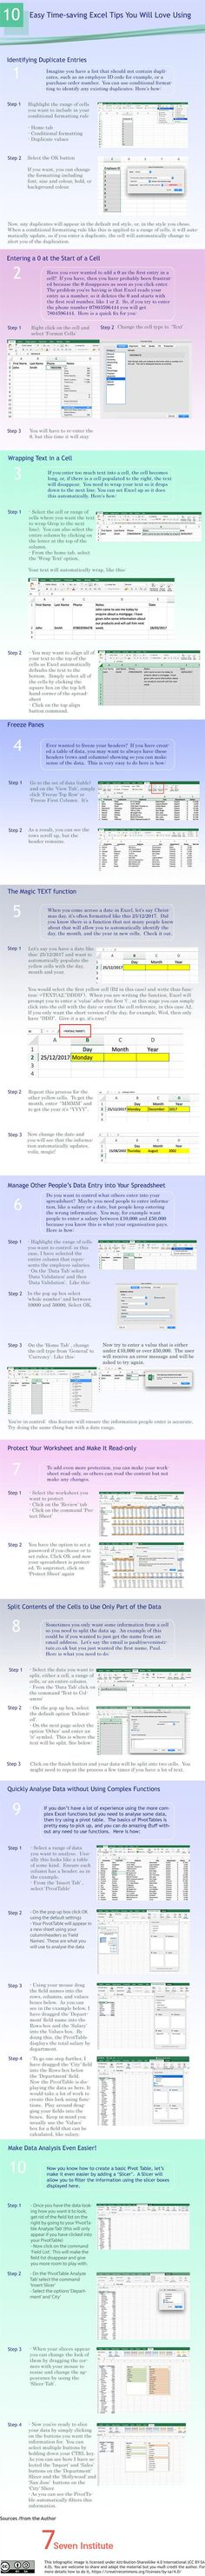 We all have our favorite Excel tricks. Do you know all 10 time-saving tips explained in this infographic? You'll see basics (like wrapping text) and more complex ones (like slicing pivot tables).